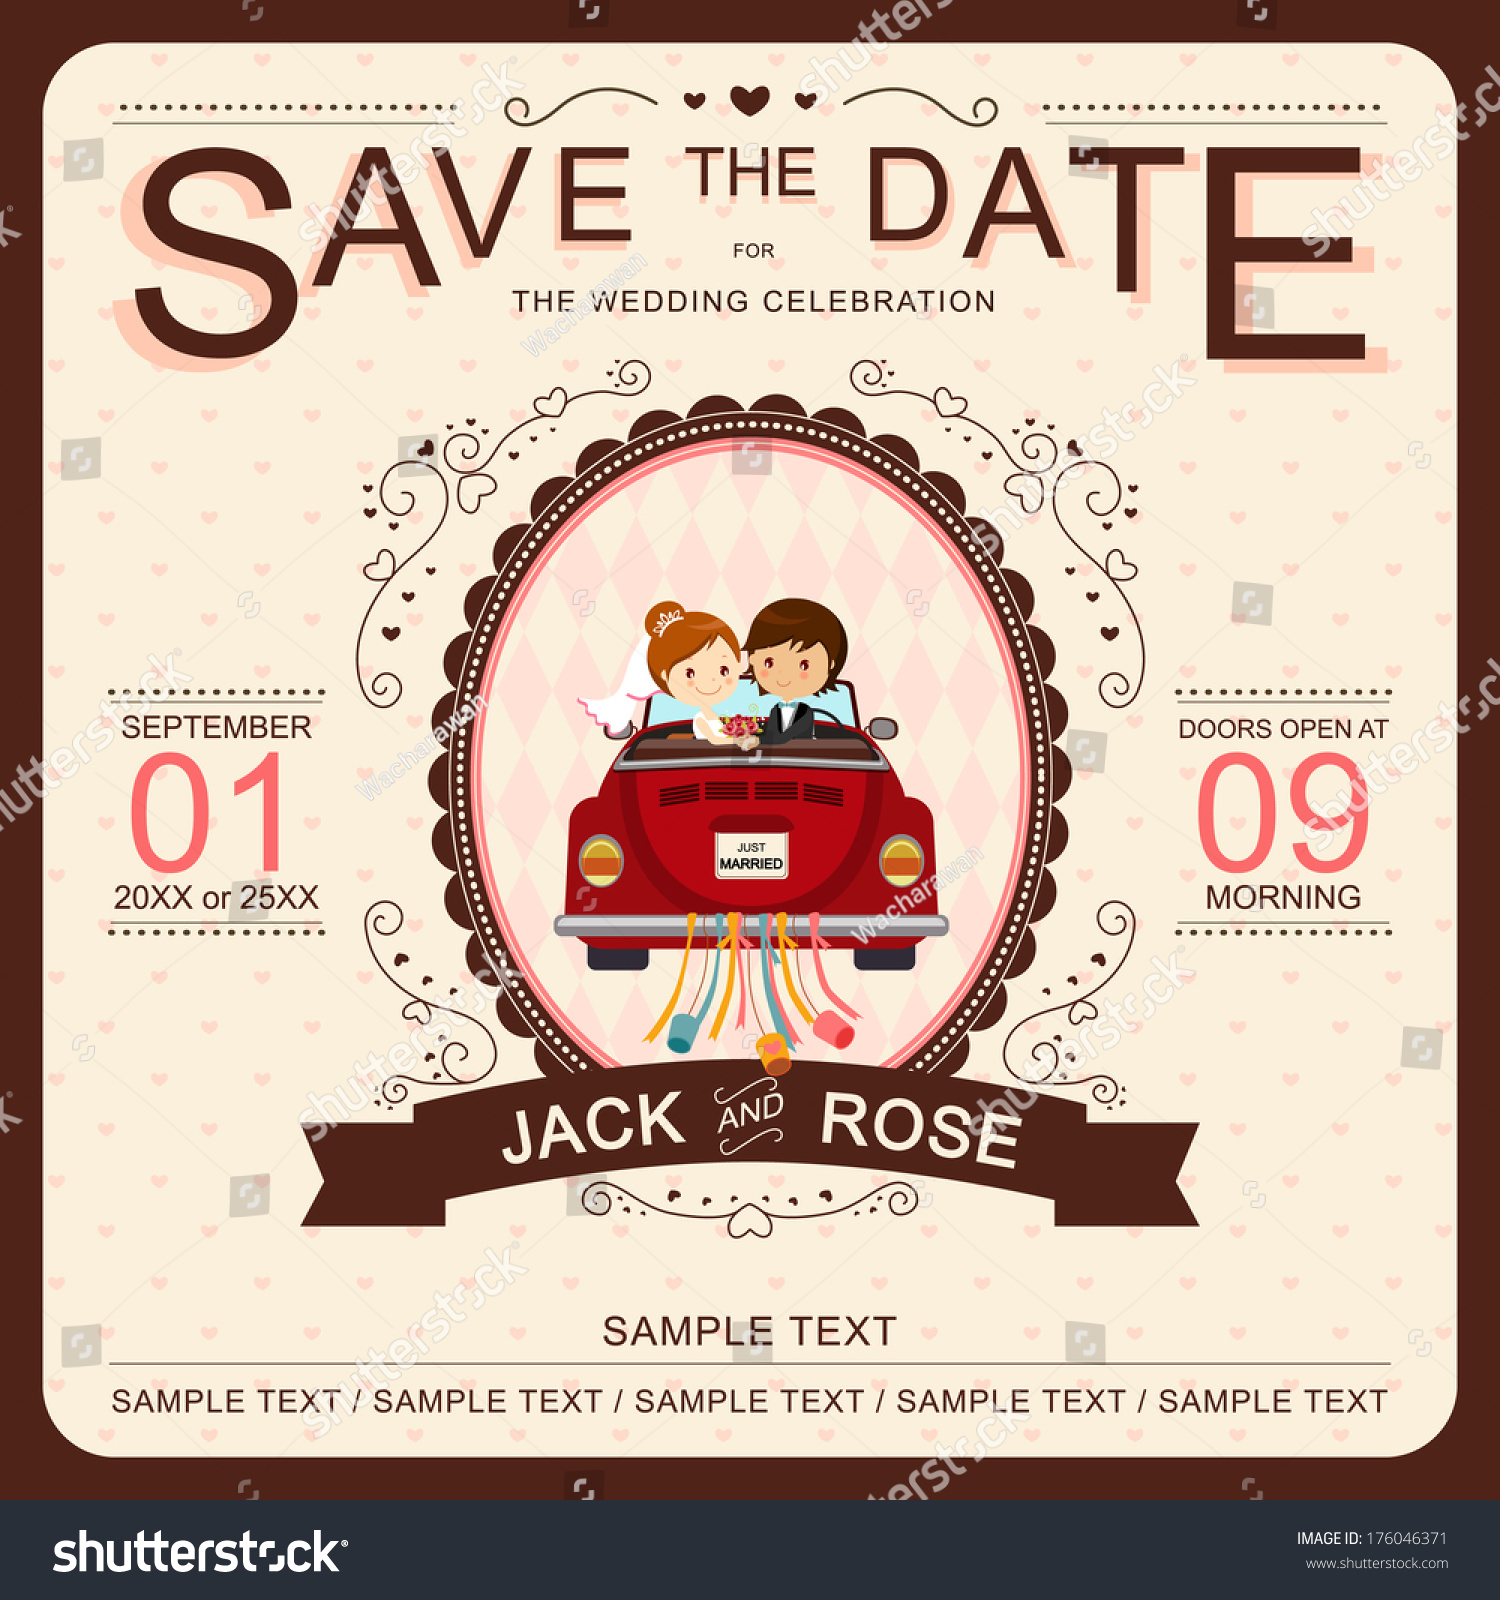 Wedding Invitation Message From Bride And Groom: Cute Bride And Groom In Red Car Wedding Invitation